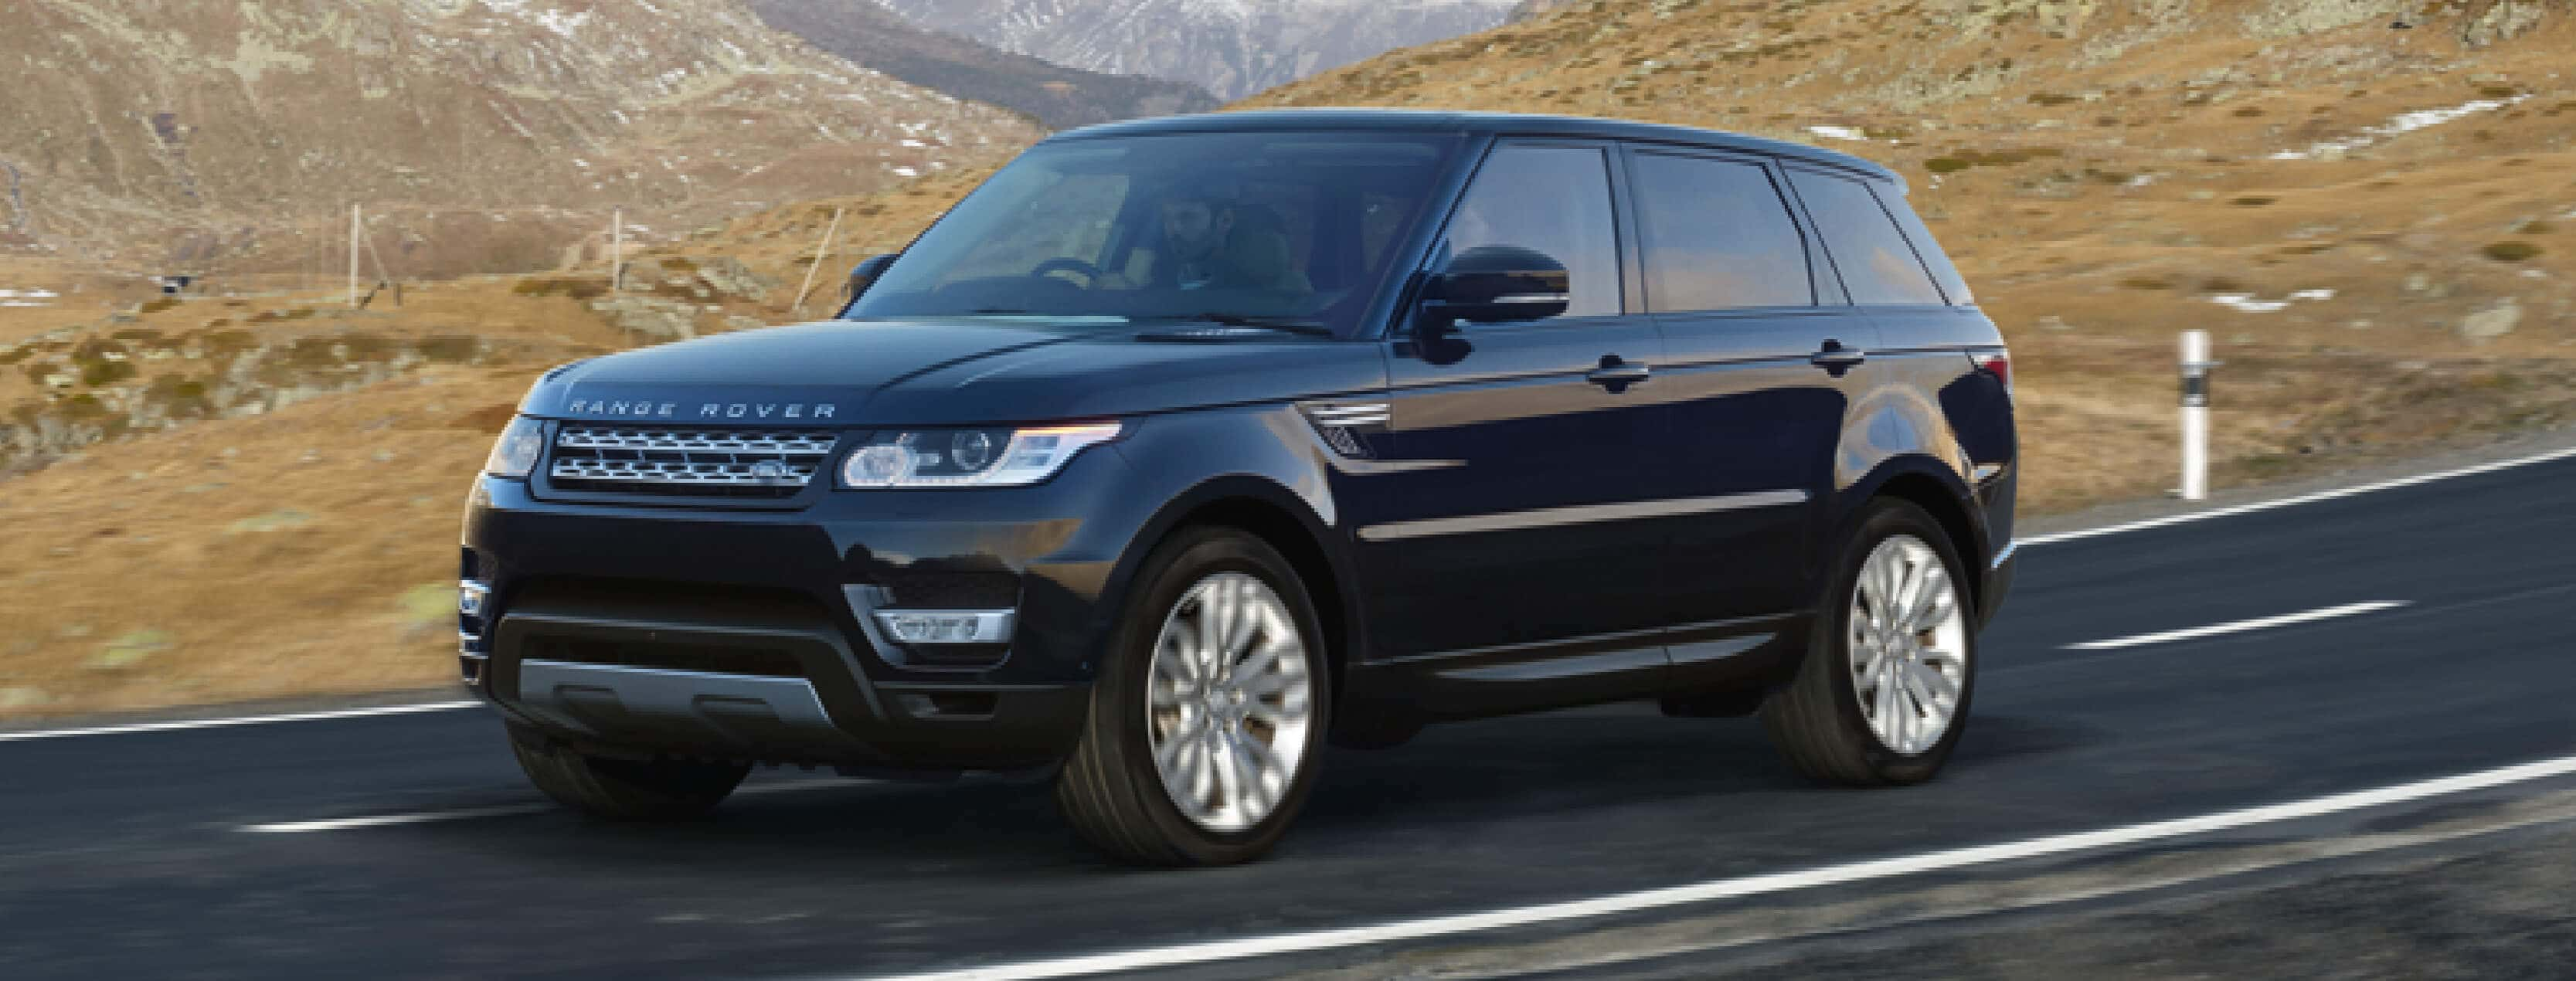 w ltd rover cars manchester used d range and land rangerover rovers greater landrover big in